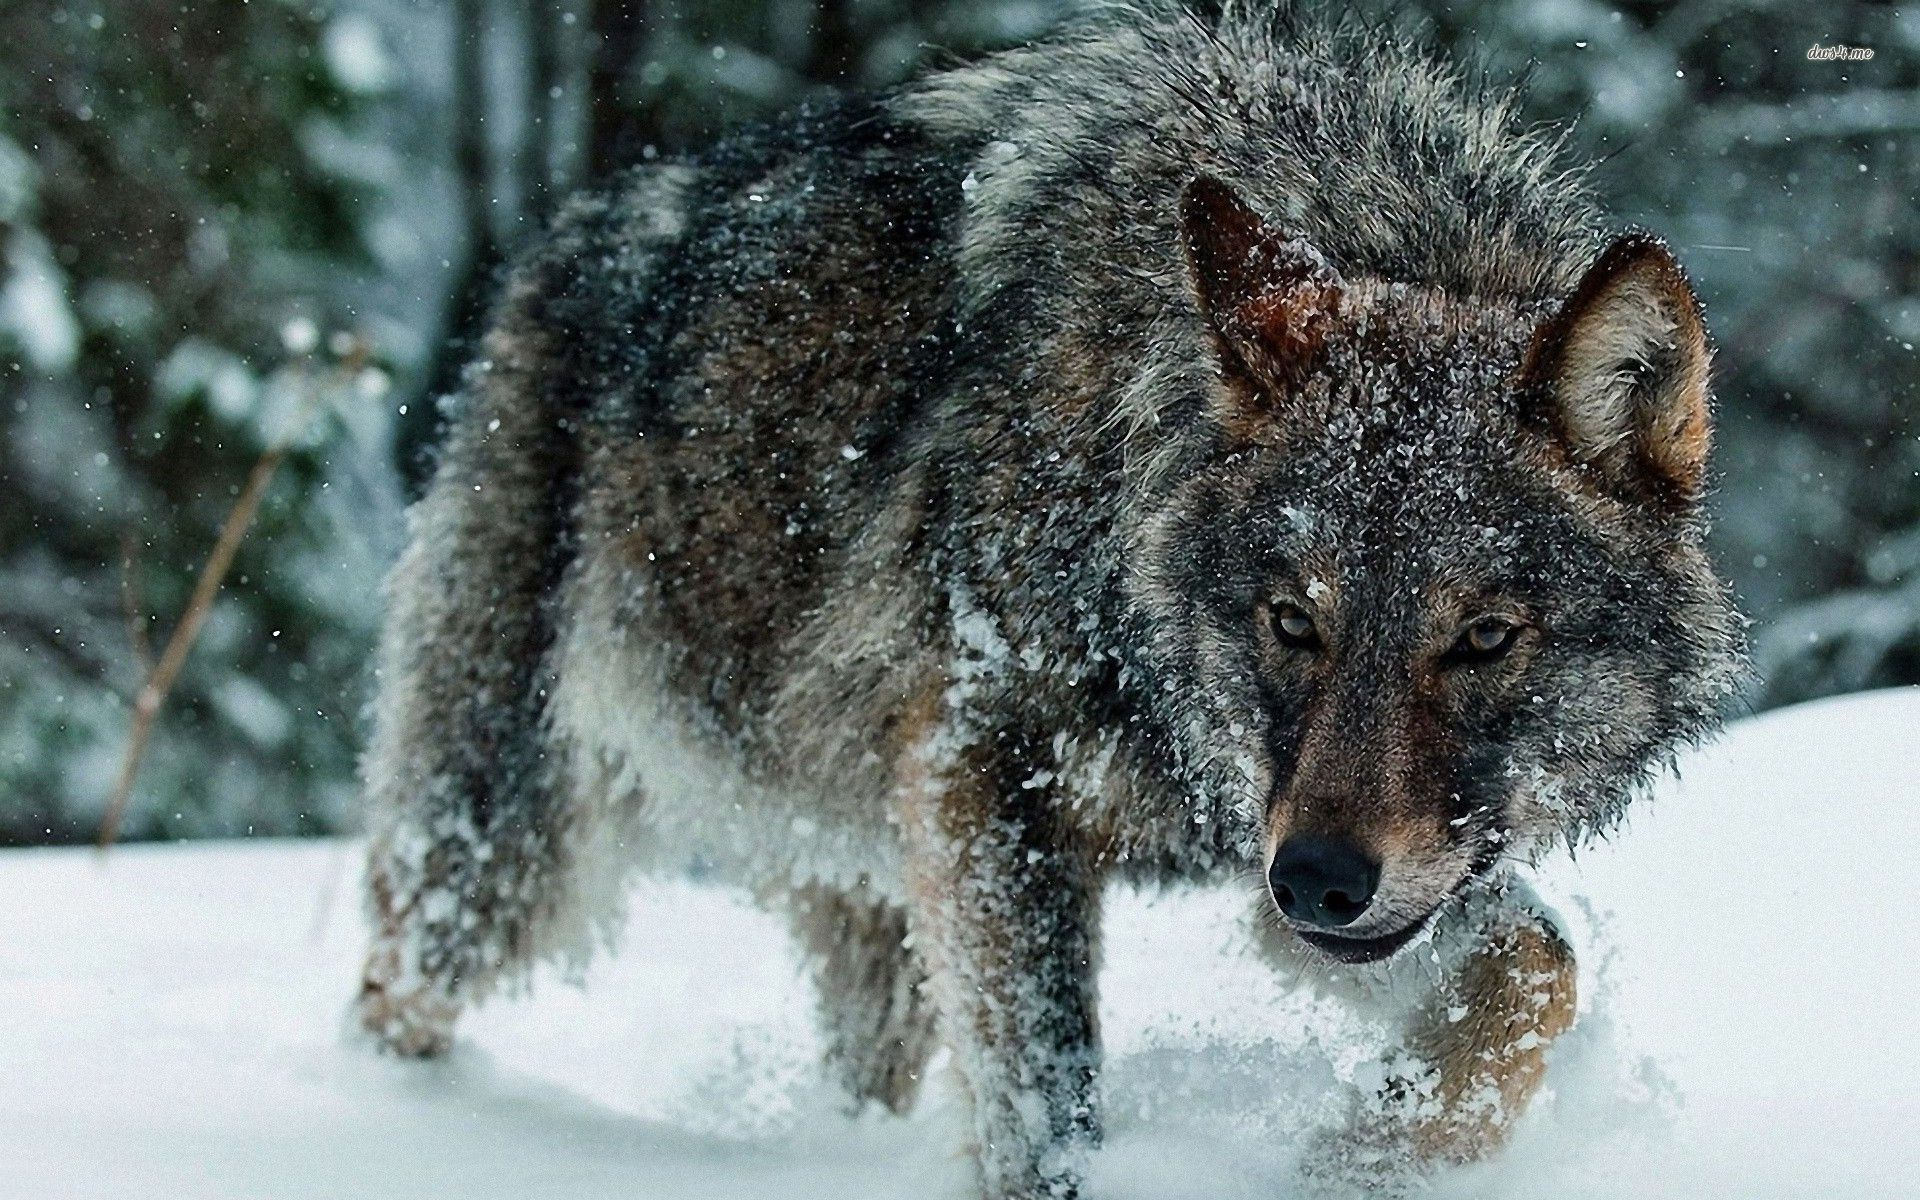 Wolf HD Wallpaper  Background Image  1920x1200  ID:505491  Wallpaper Abyss